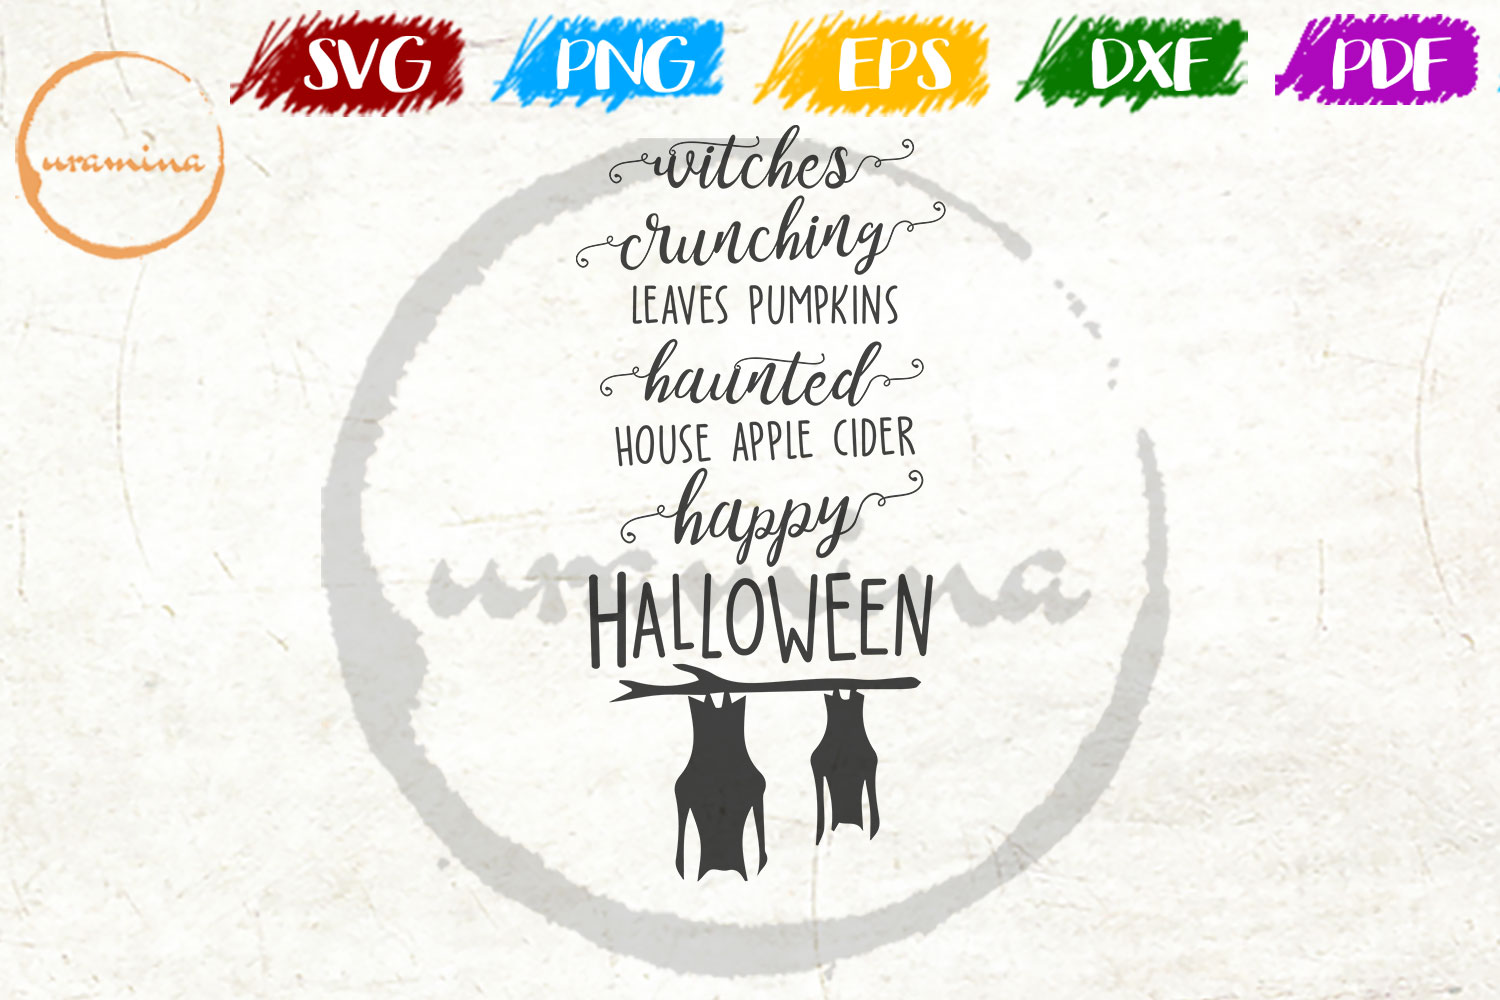 Witches Crunching Leaves Pumpkins Graphic By Uramina Creative